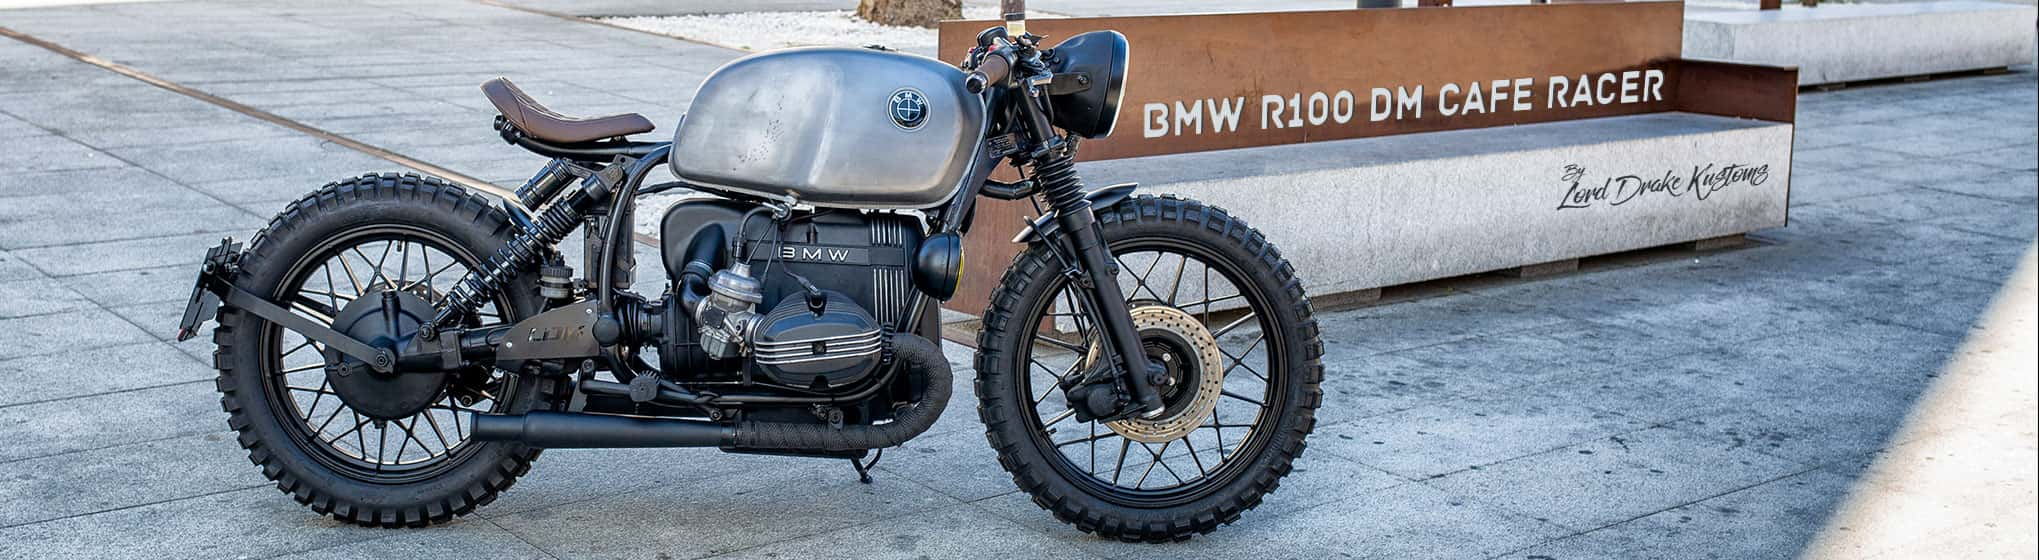 Slider image BMW R100 DM Cafe Racer